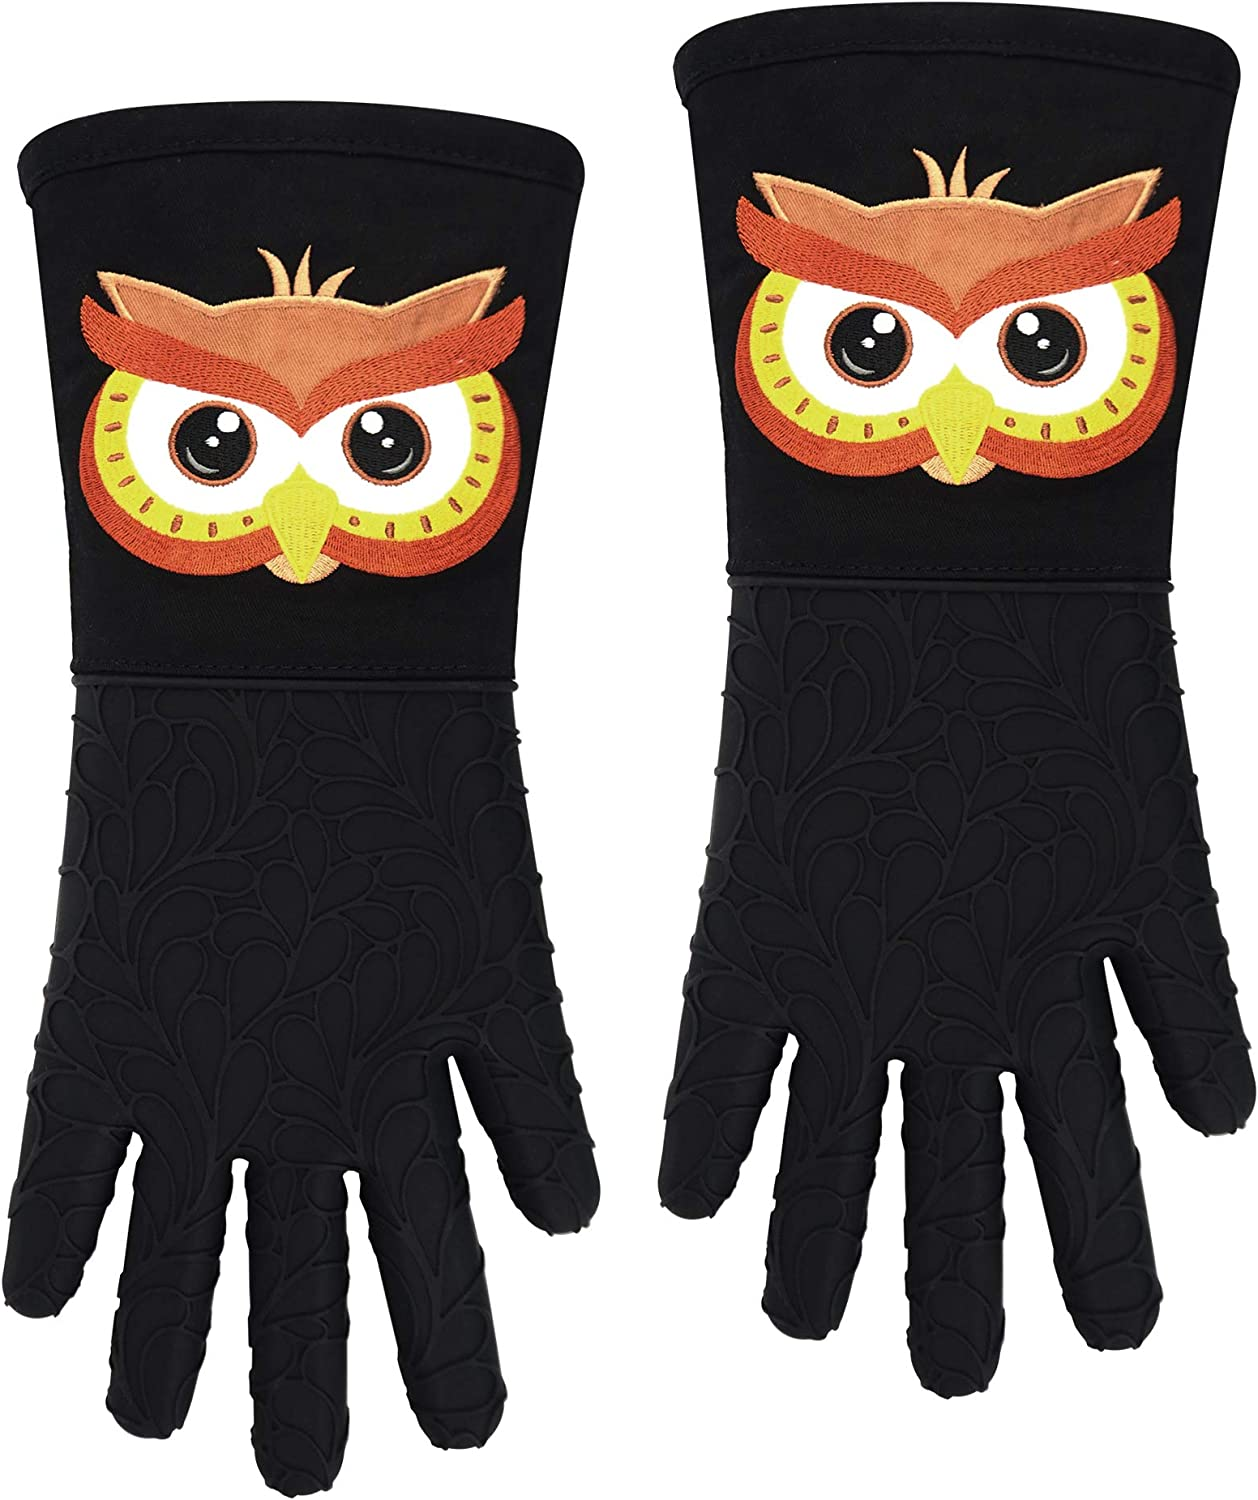 RED LMLDETA Silicone Oven Gloves Mitts 1 Pair Embroidery Owl Heat Resistant Extra Long 5 Fingers Flexible Non Slip Food Grade Mittens Kitchen Women Men Pot Holders Cooking Baking BBQ (Owl, Black)